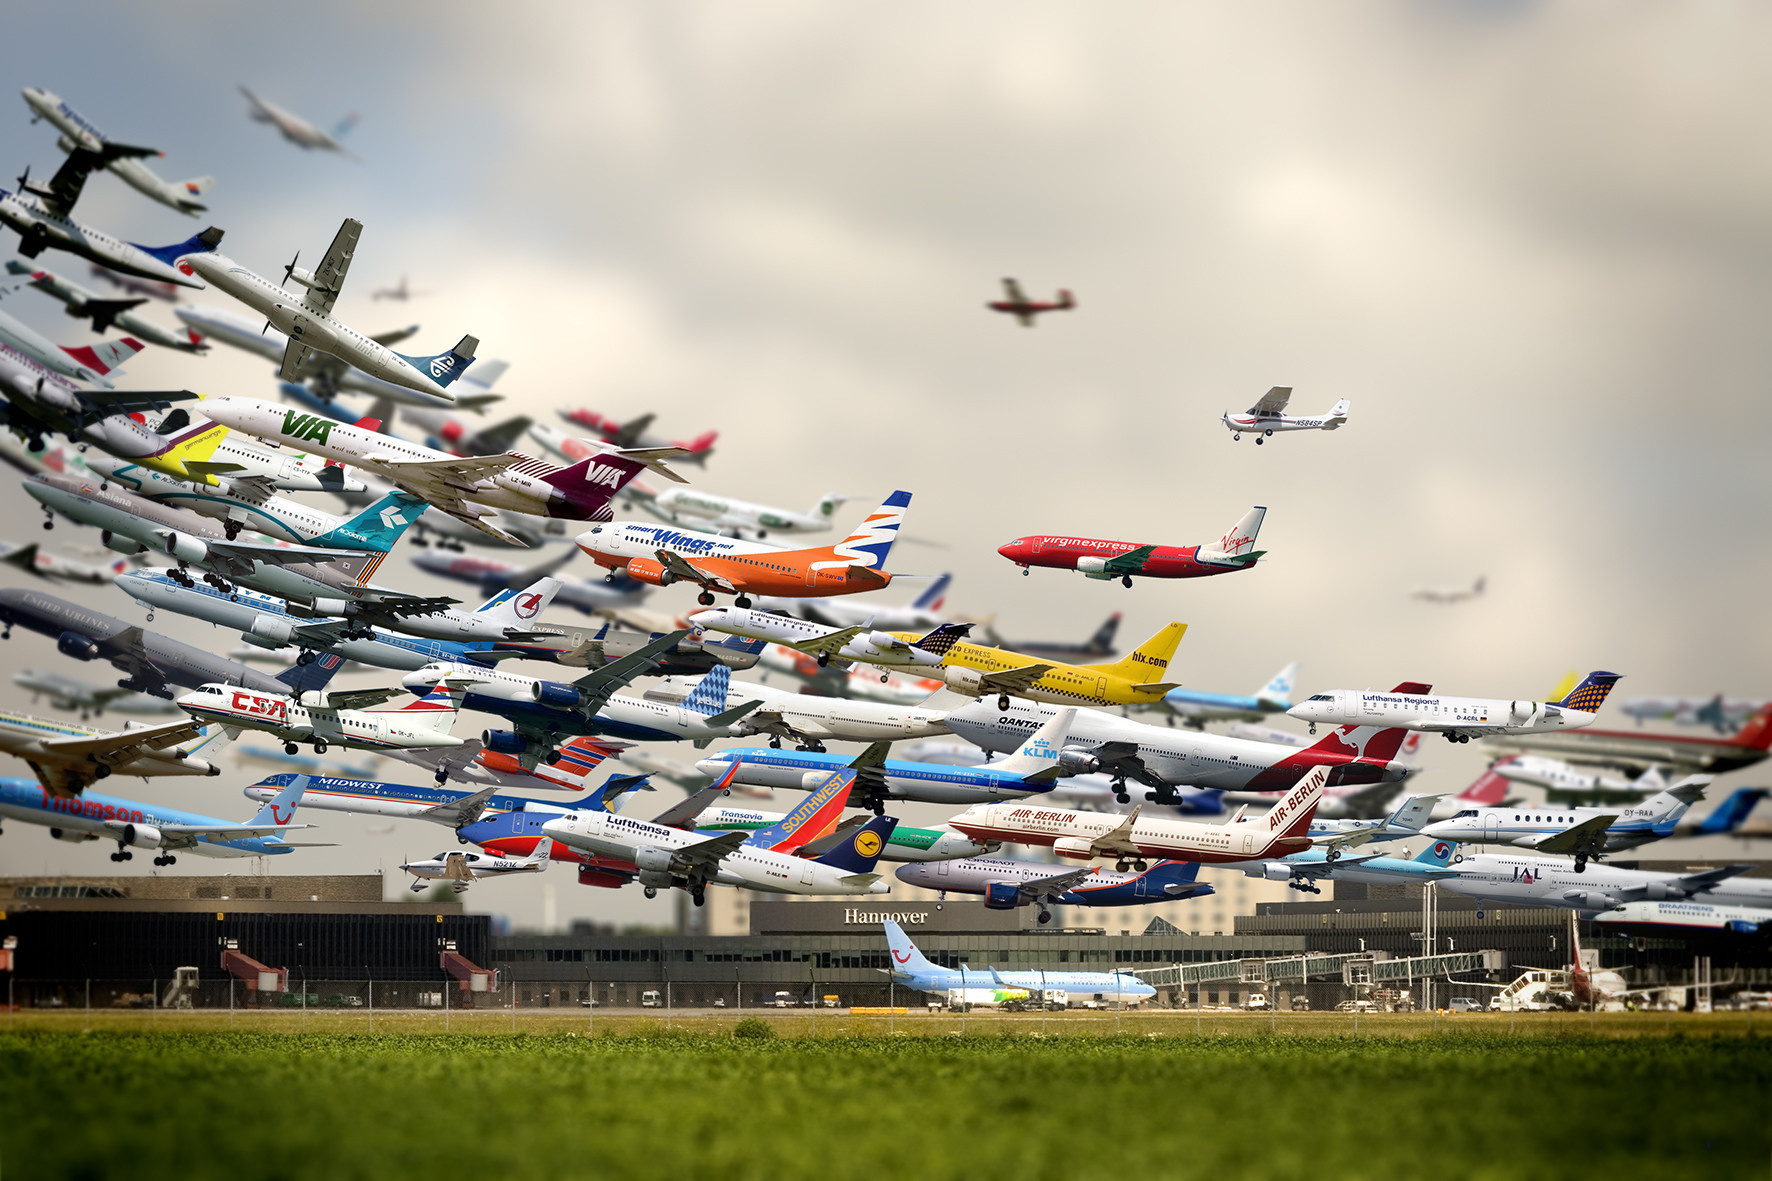 6 -  A multiple exposure shot of various airplanes taking off at the Hannover Airport.